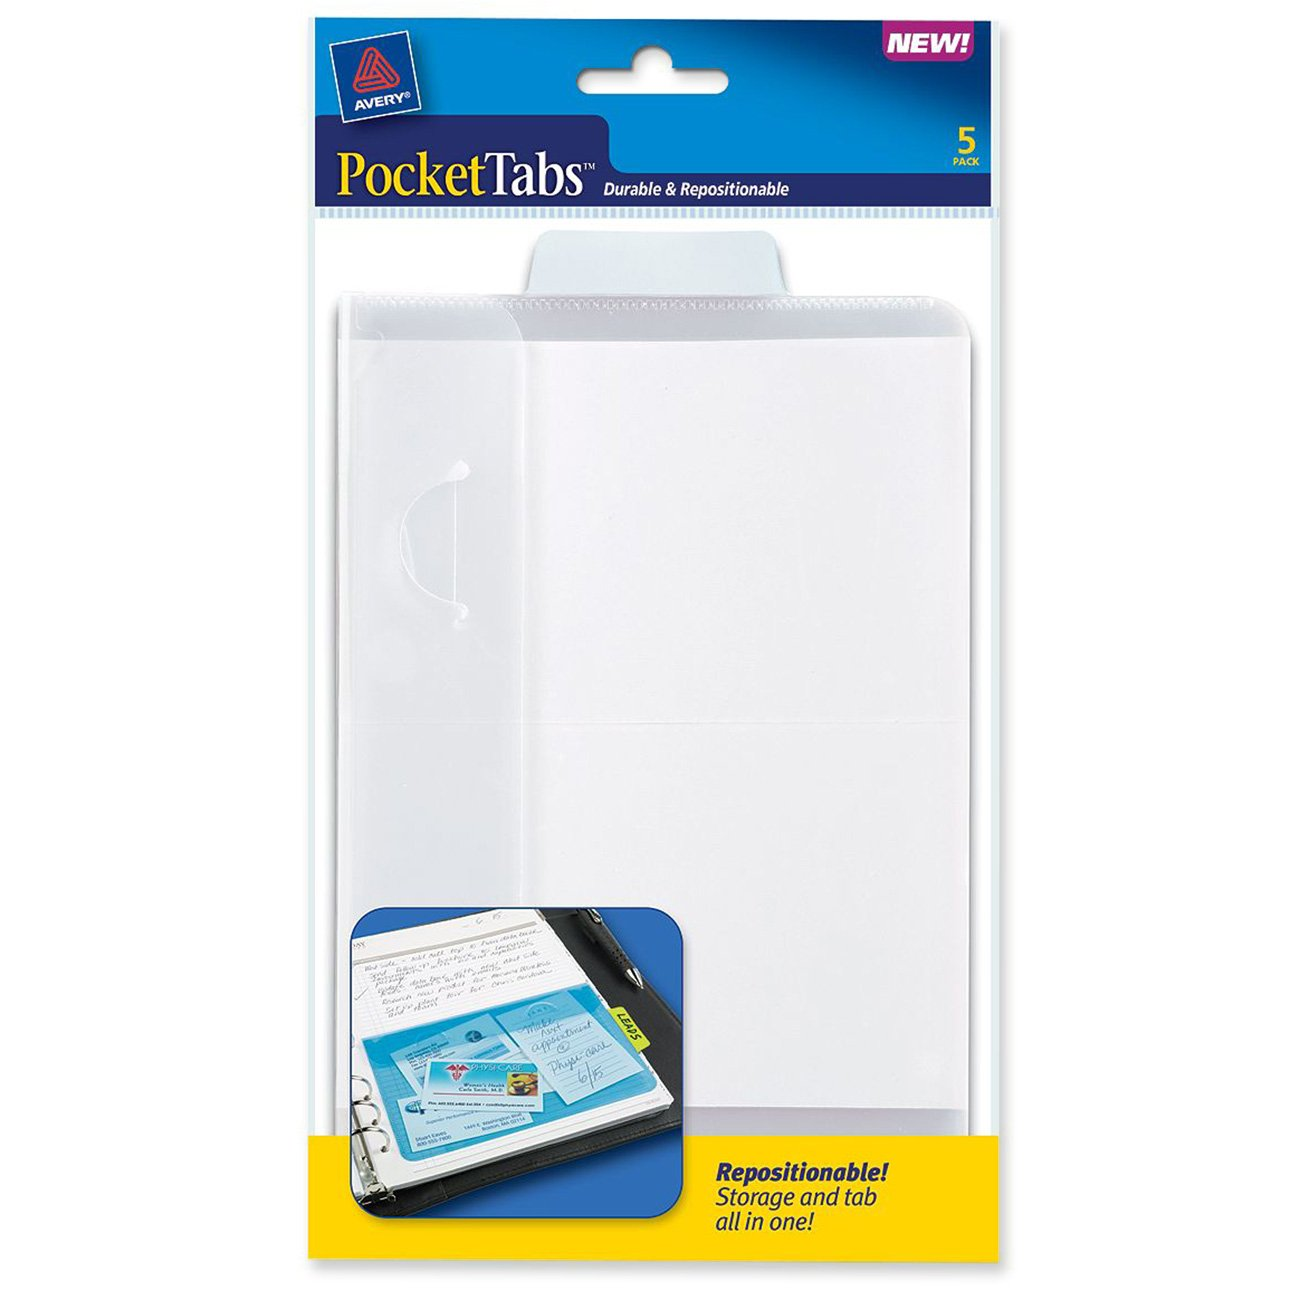 Avery PocketTabs, 5.125 x 8.315 Inches, Half-Page Size, Pastel Blue, 5 per pack (16365)